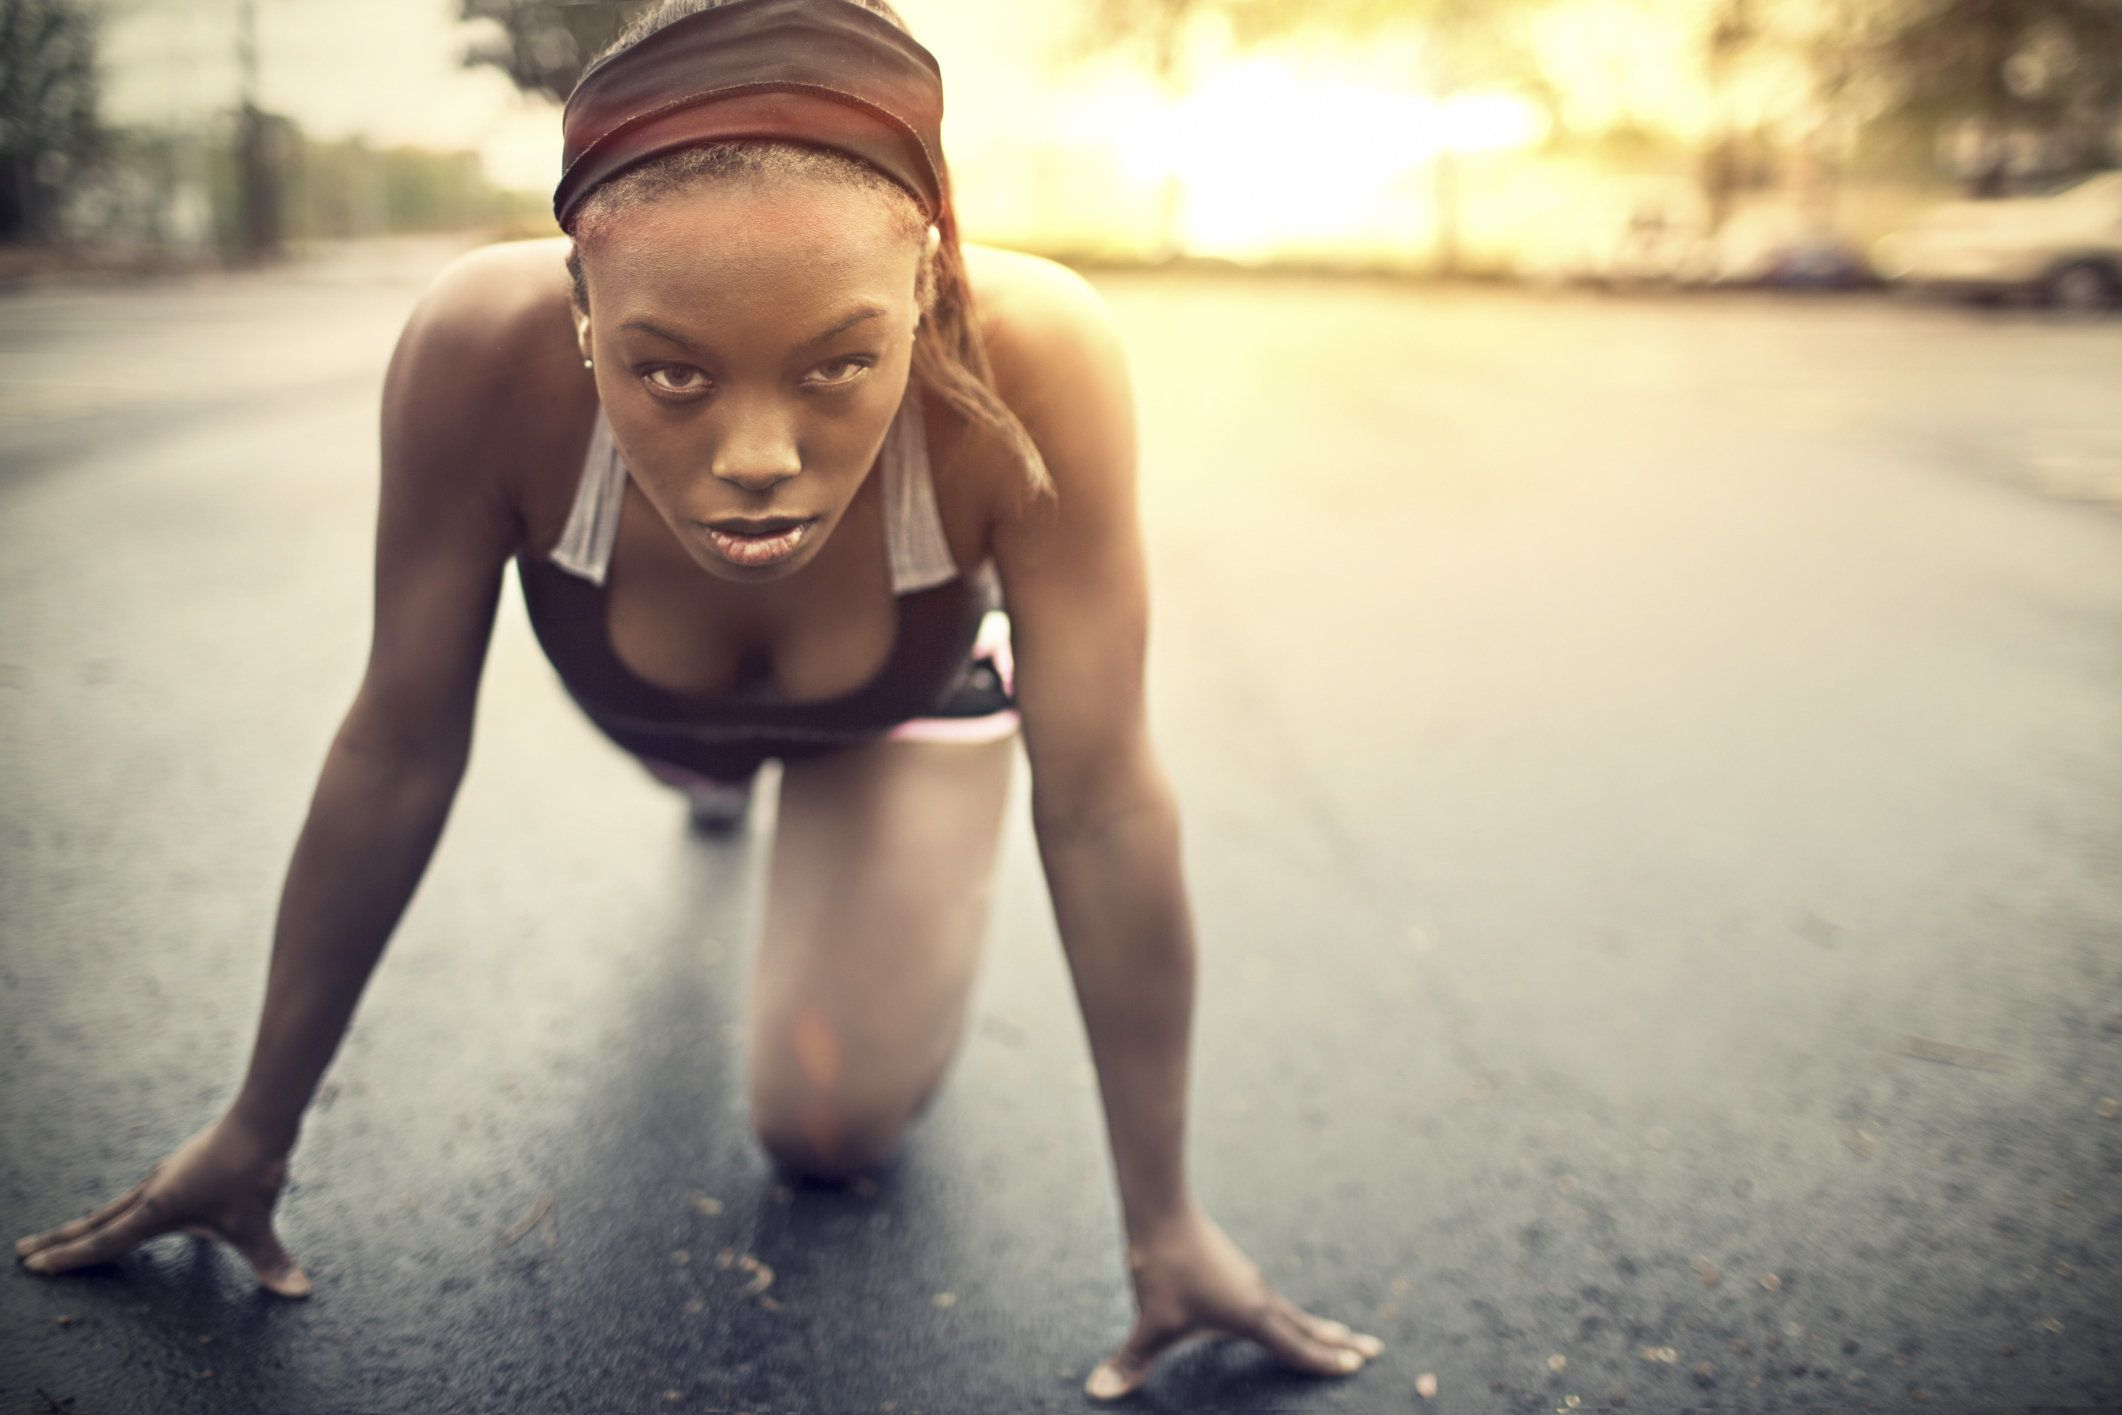 Portrait of a woman starting the jogging.